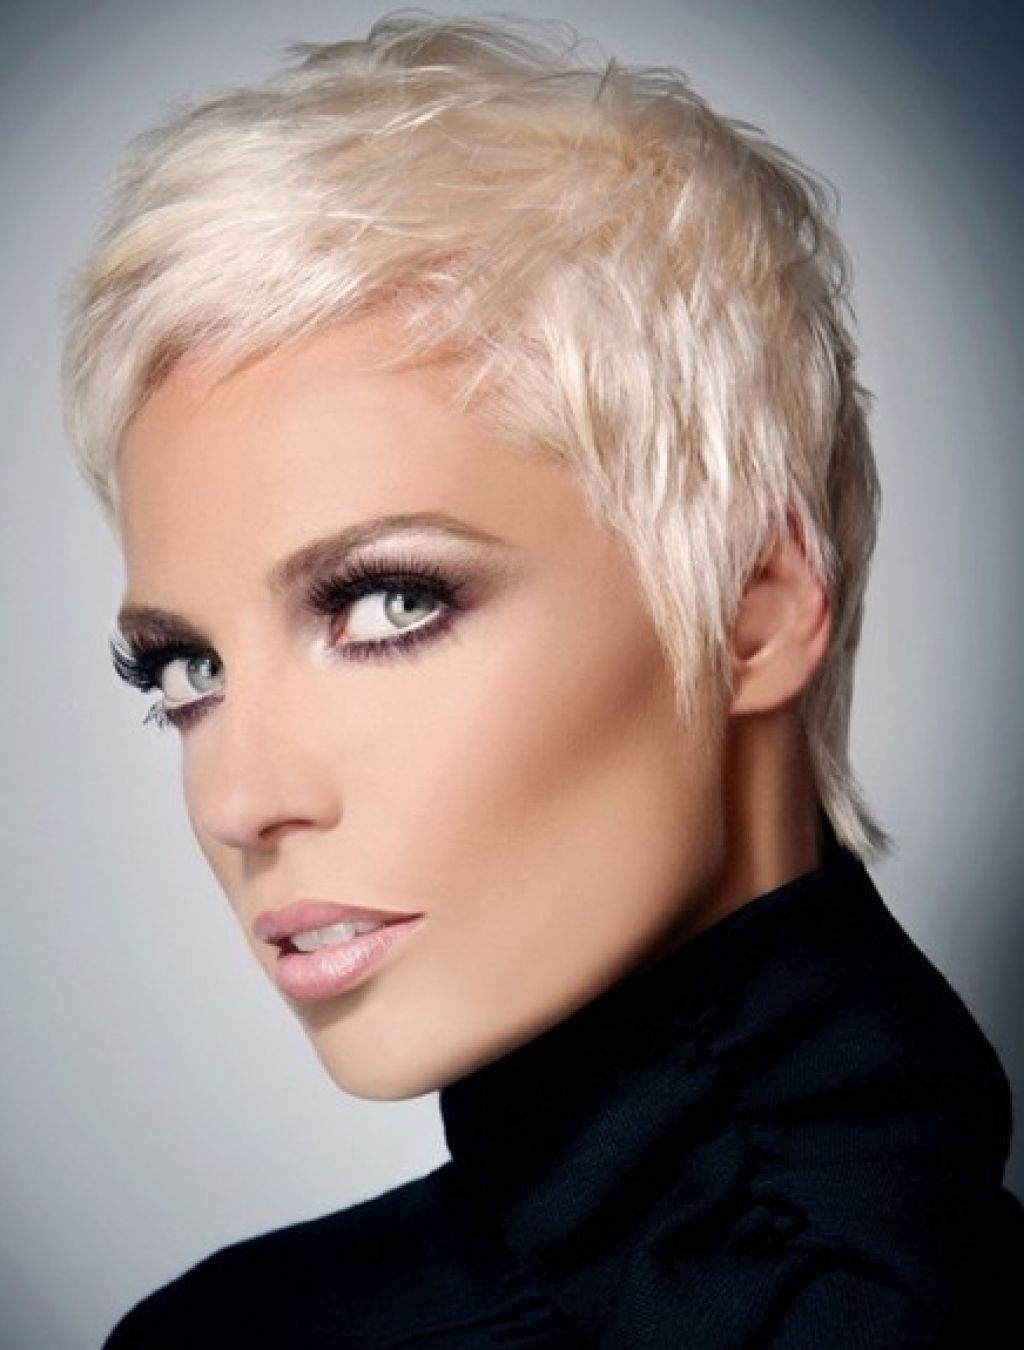 Short Pixie Haircuts For Gray Hair 34 Pixie Hairstyles And Cuts With 2018 Gray Hair Pixie Hairstyles (View 6 of 15)